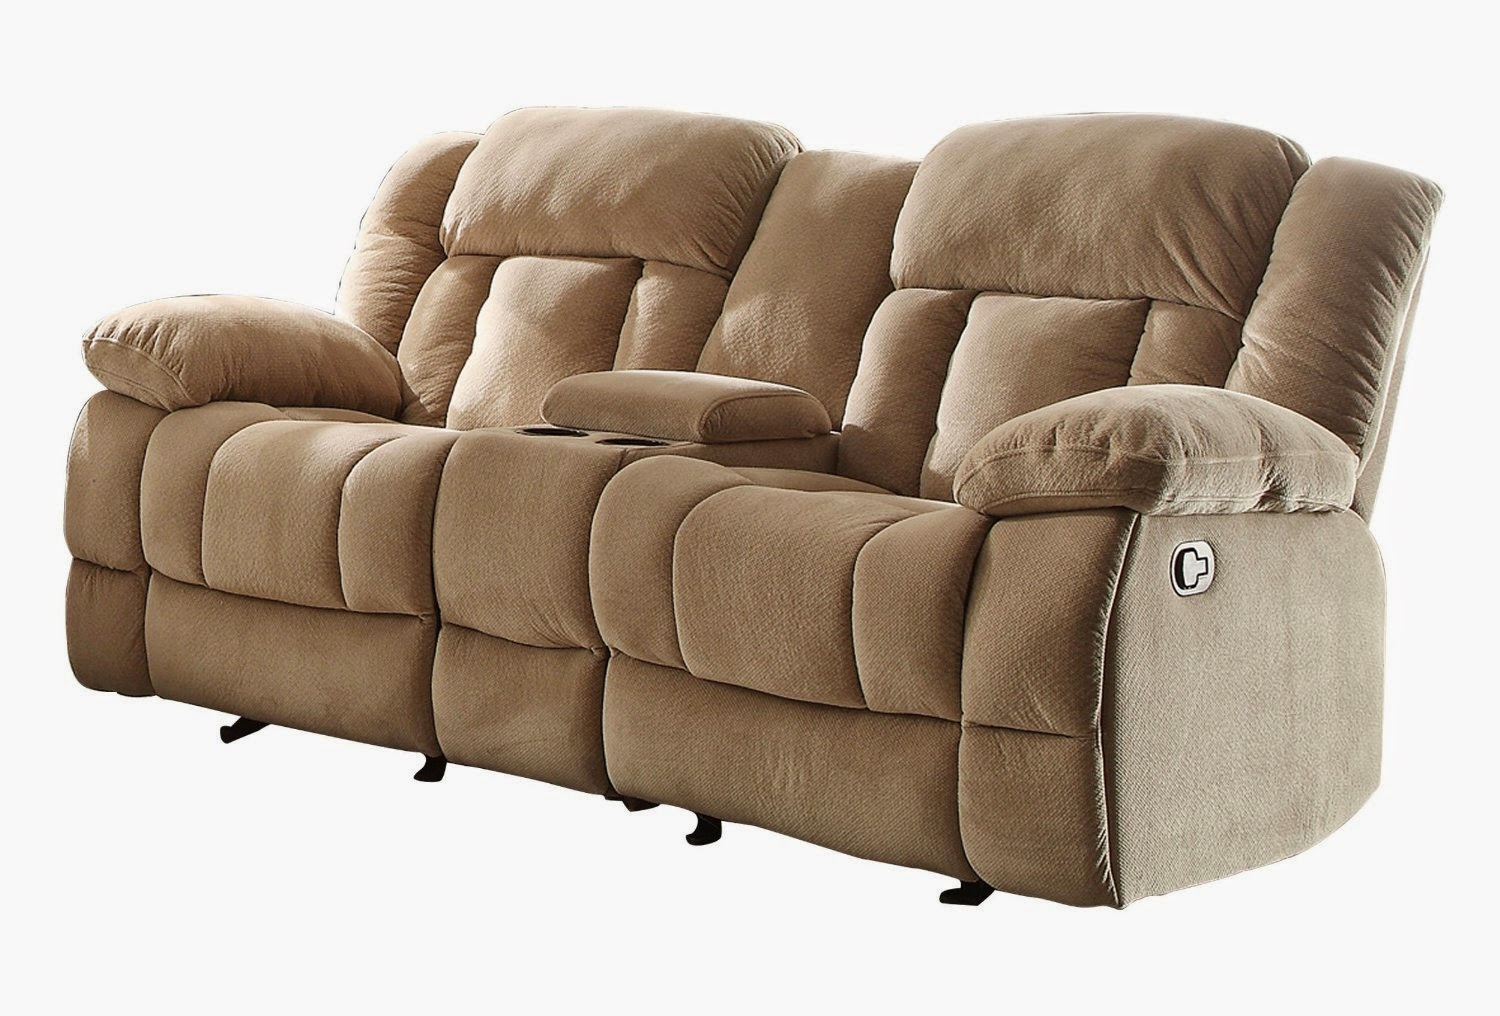 Broyhill Recliner Sofas Best 25 Double Recliner Loveseat Ideas On Pinterest Reclining Thesofa